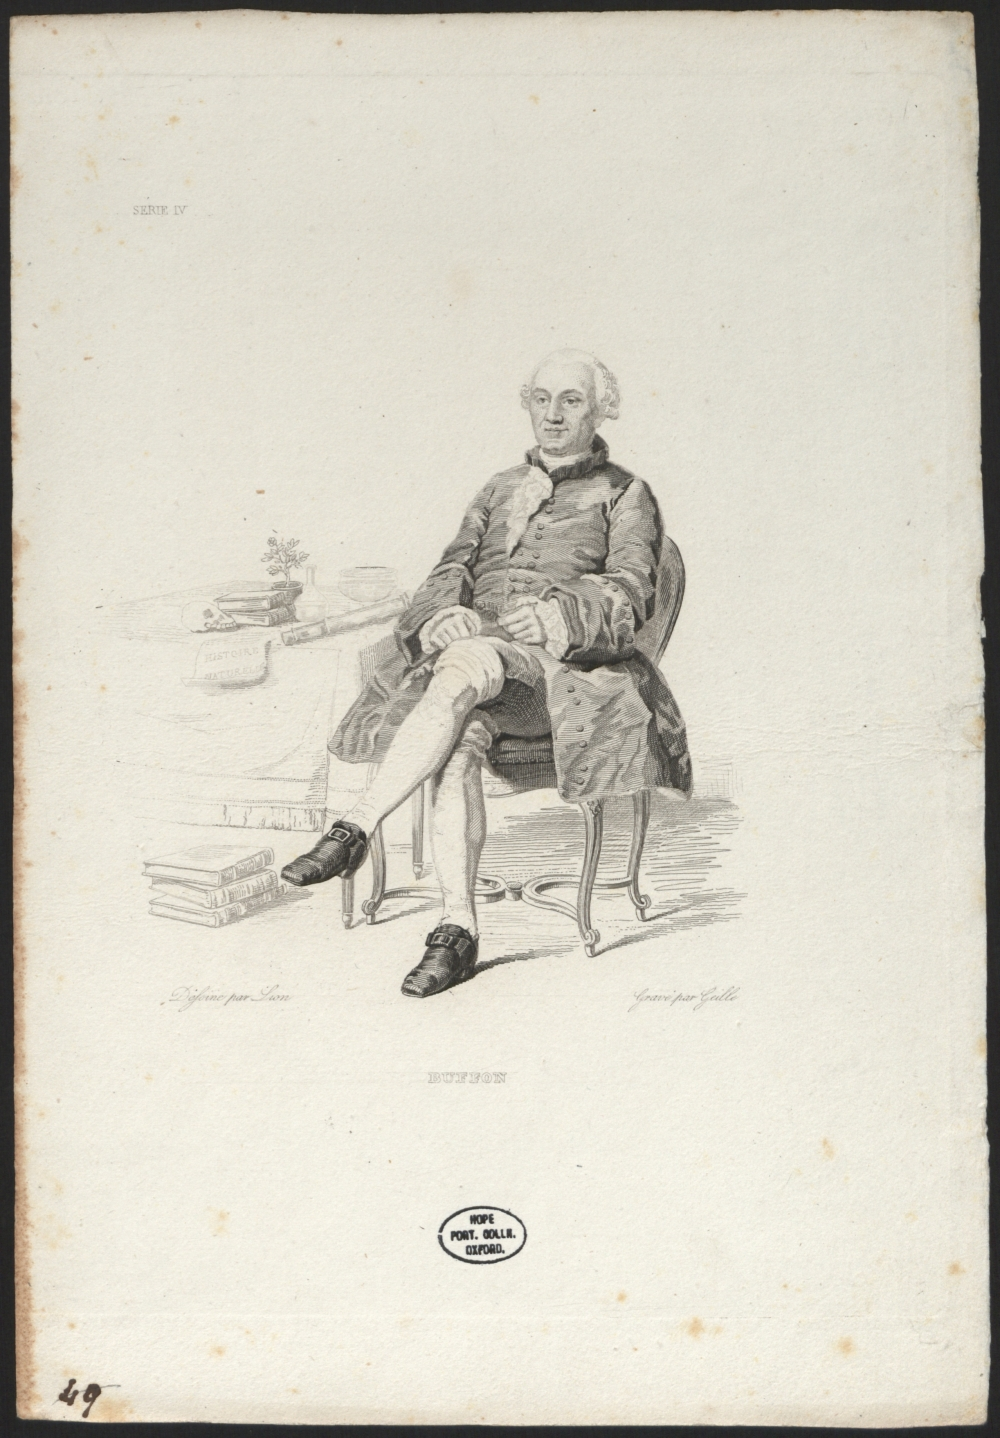 preview image for Print (Engraving) Comte de Buffon, by Lion, painted by Gille, 19th Century